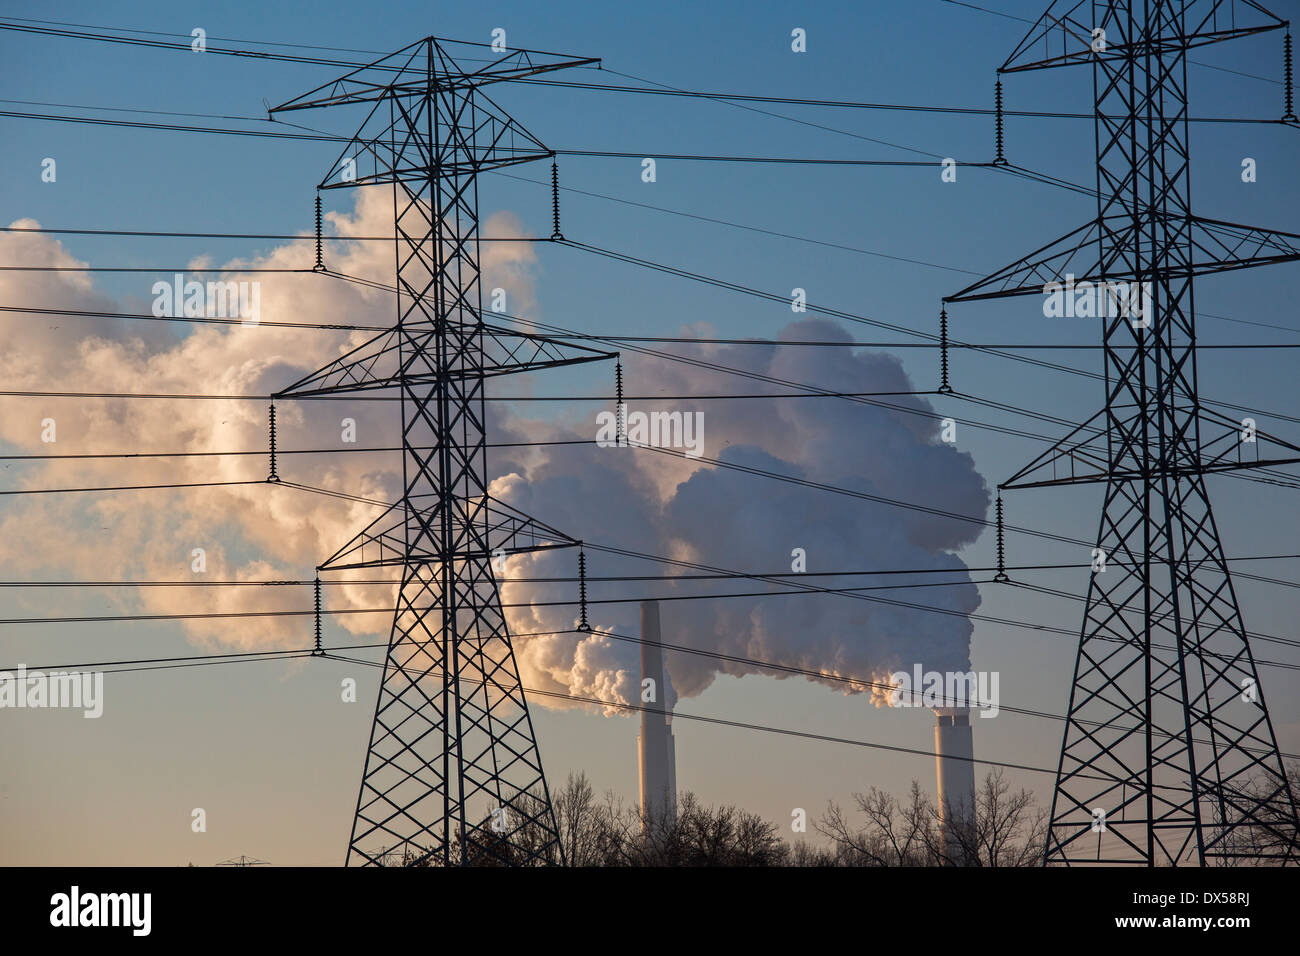 Monroe, Michigan - A DTE Energy coal-fired power plant. - Stock Image